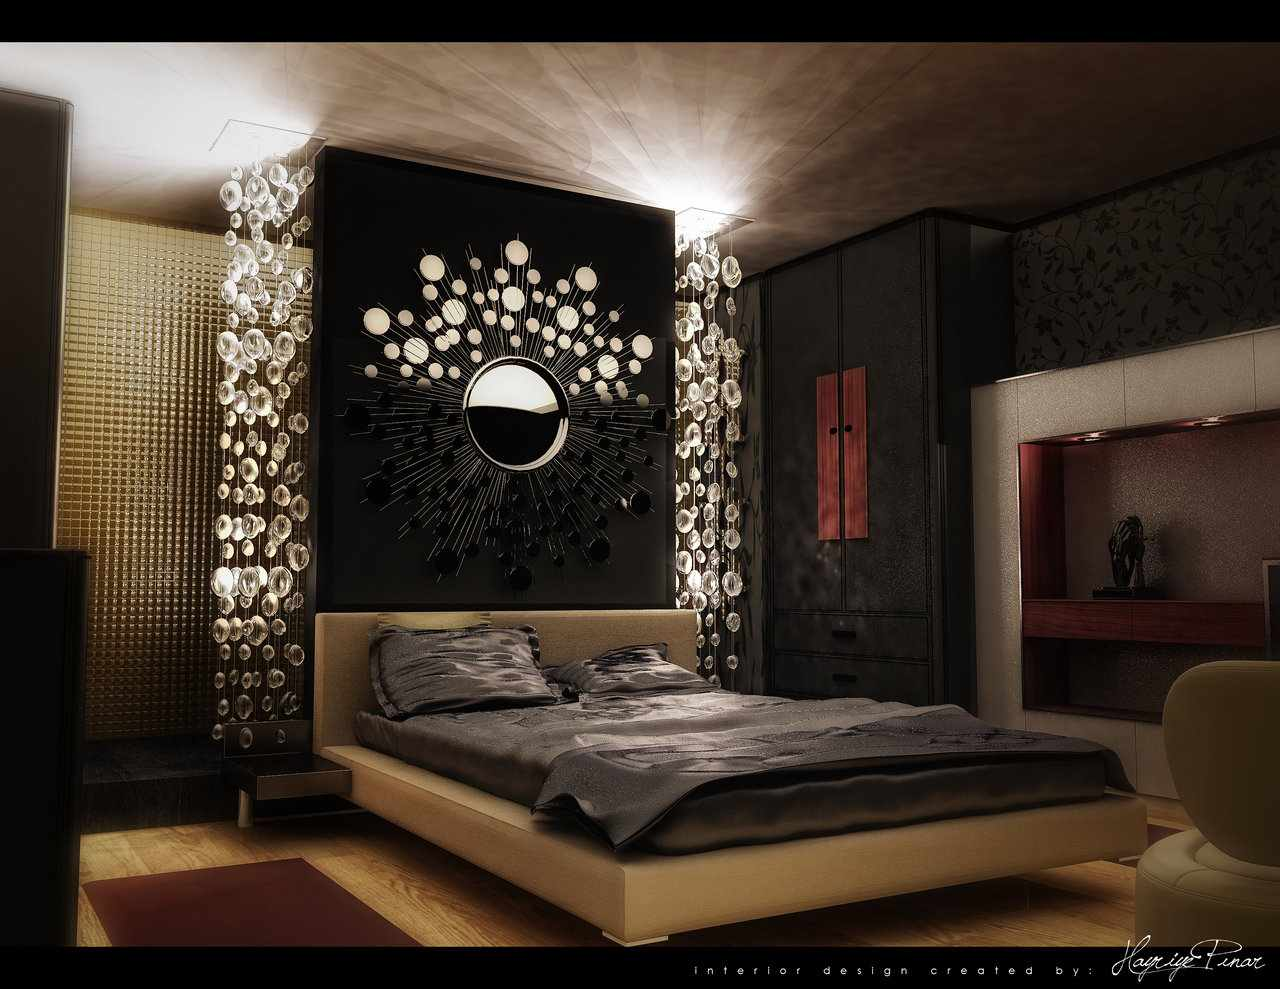 Ikea bedroom ideas ikea bedroom 2014 ideas for Bedroom design inspiration